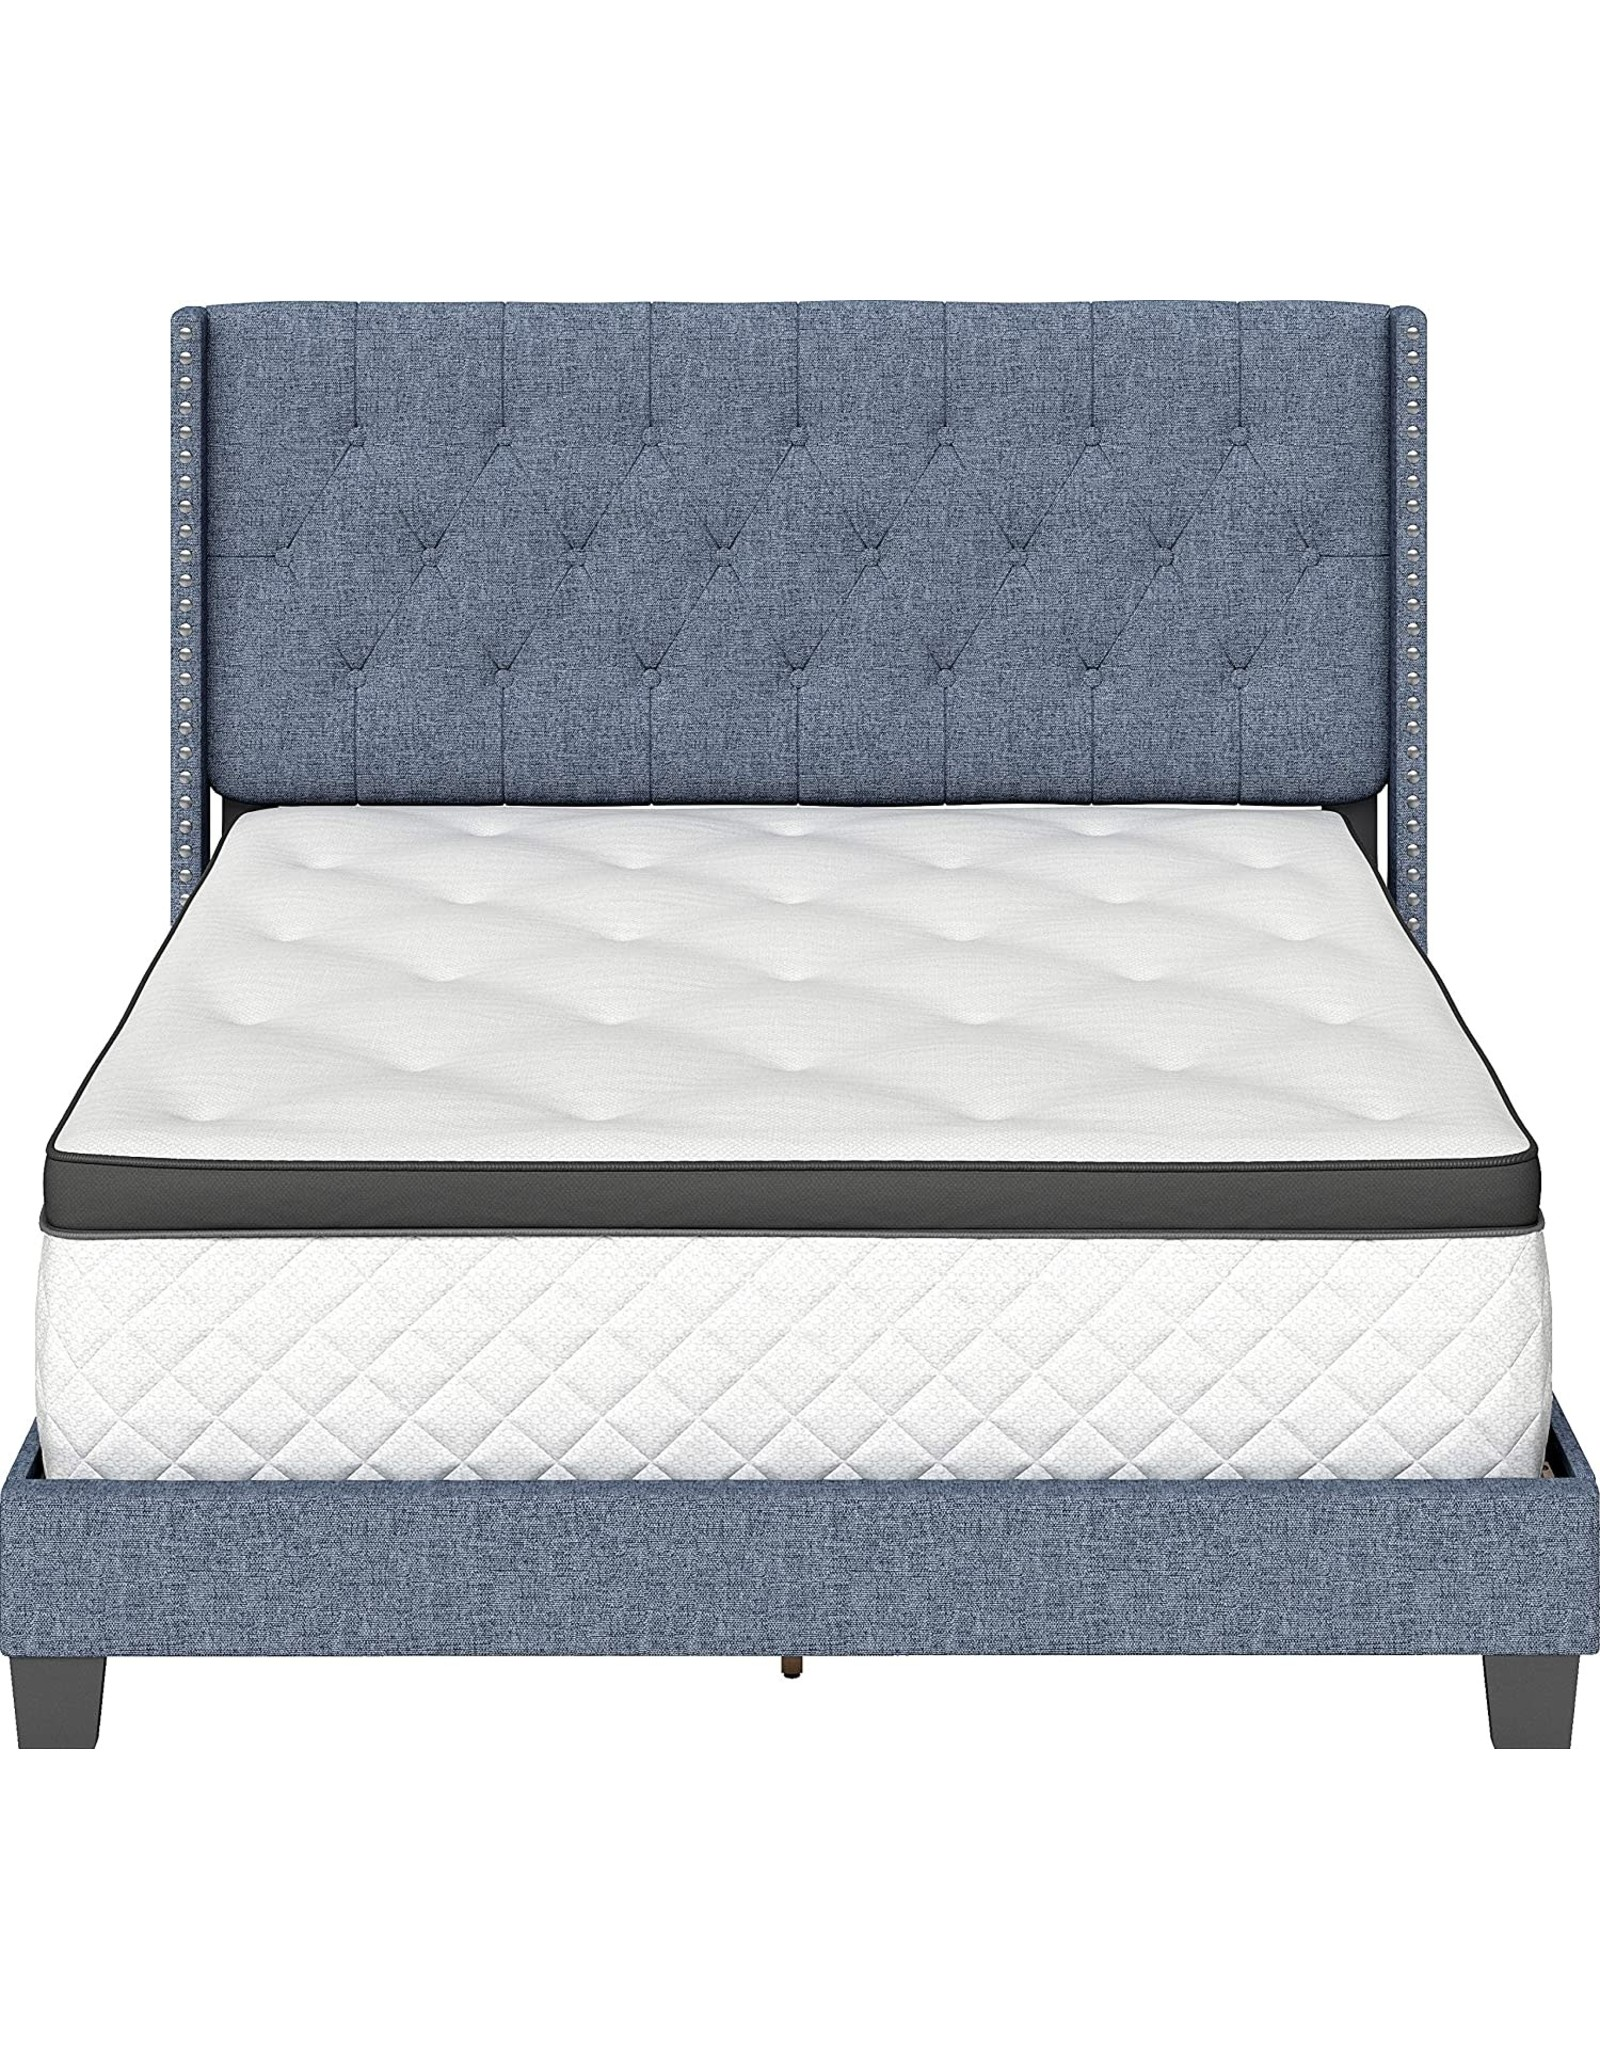 Boyd Sleep Boyd Sleep Mia Upholstered Button Tufted Platform Bed Frame Mattress Foundation with Headboard and Strong Wood Slat Supports: Linen, Blue, King